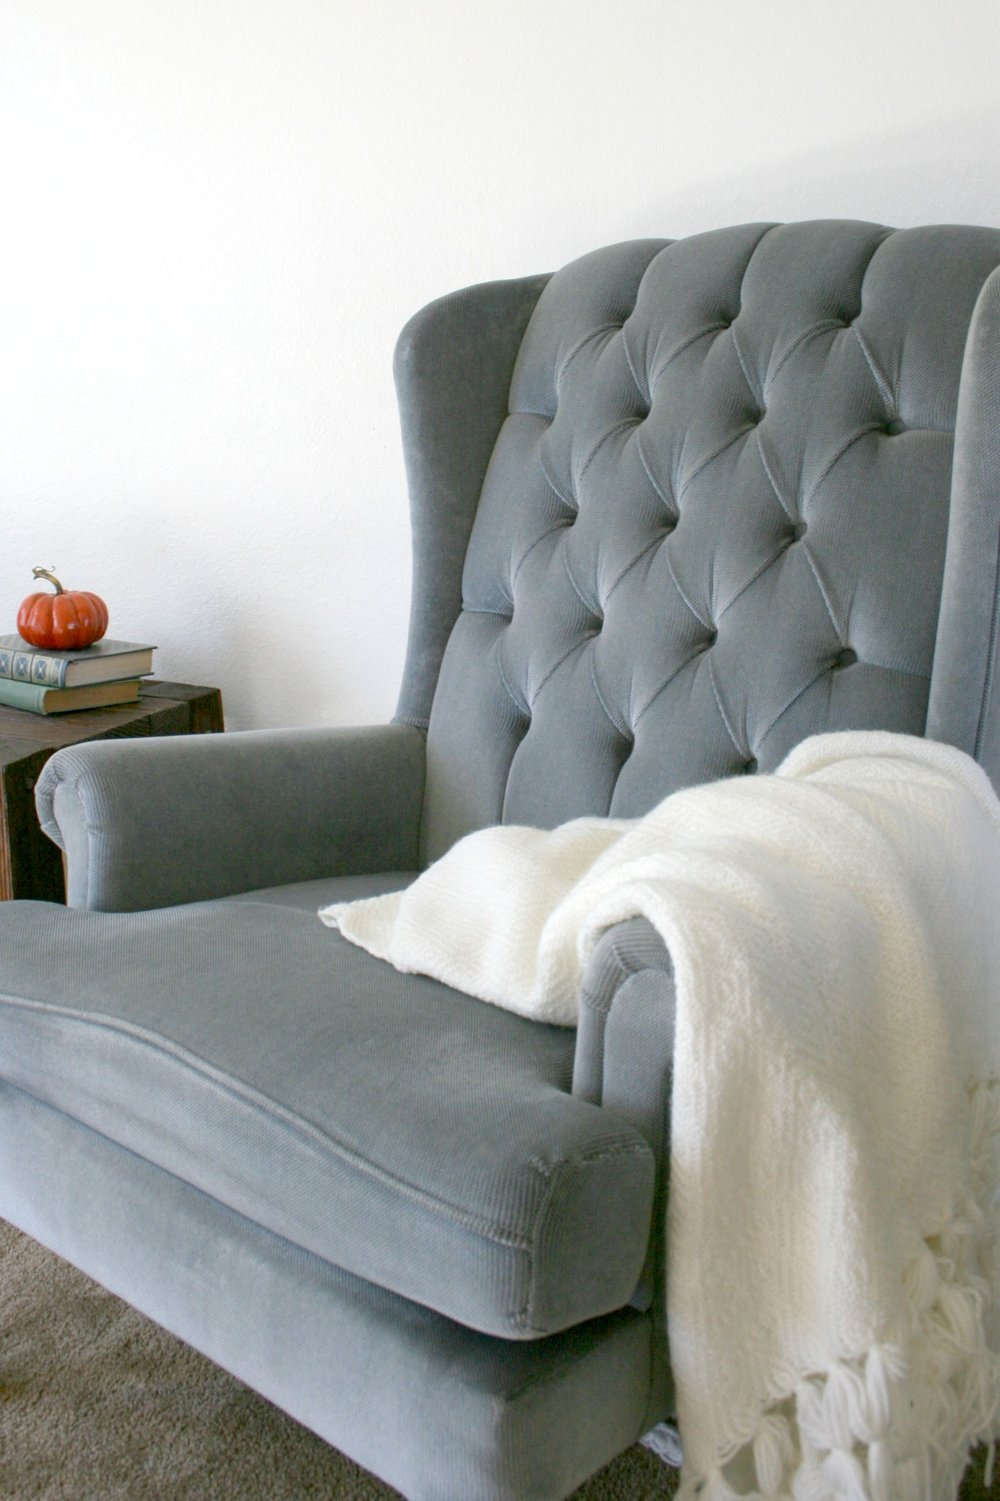 blue chair and blanket.jpg